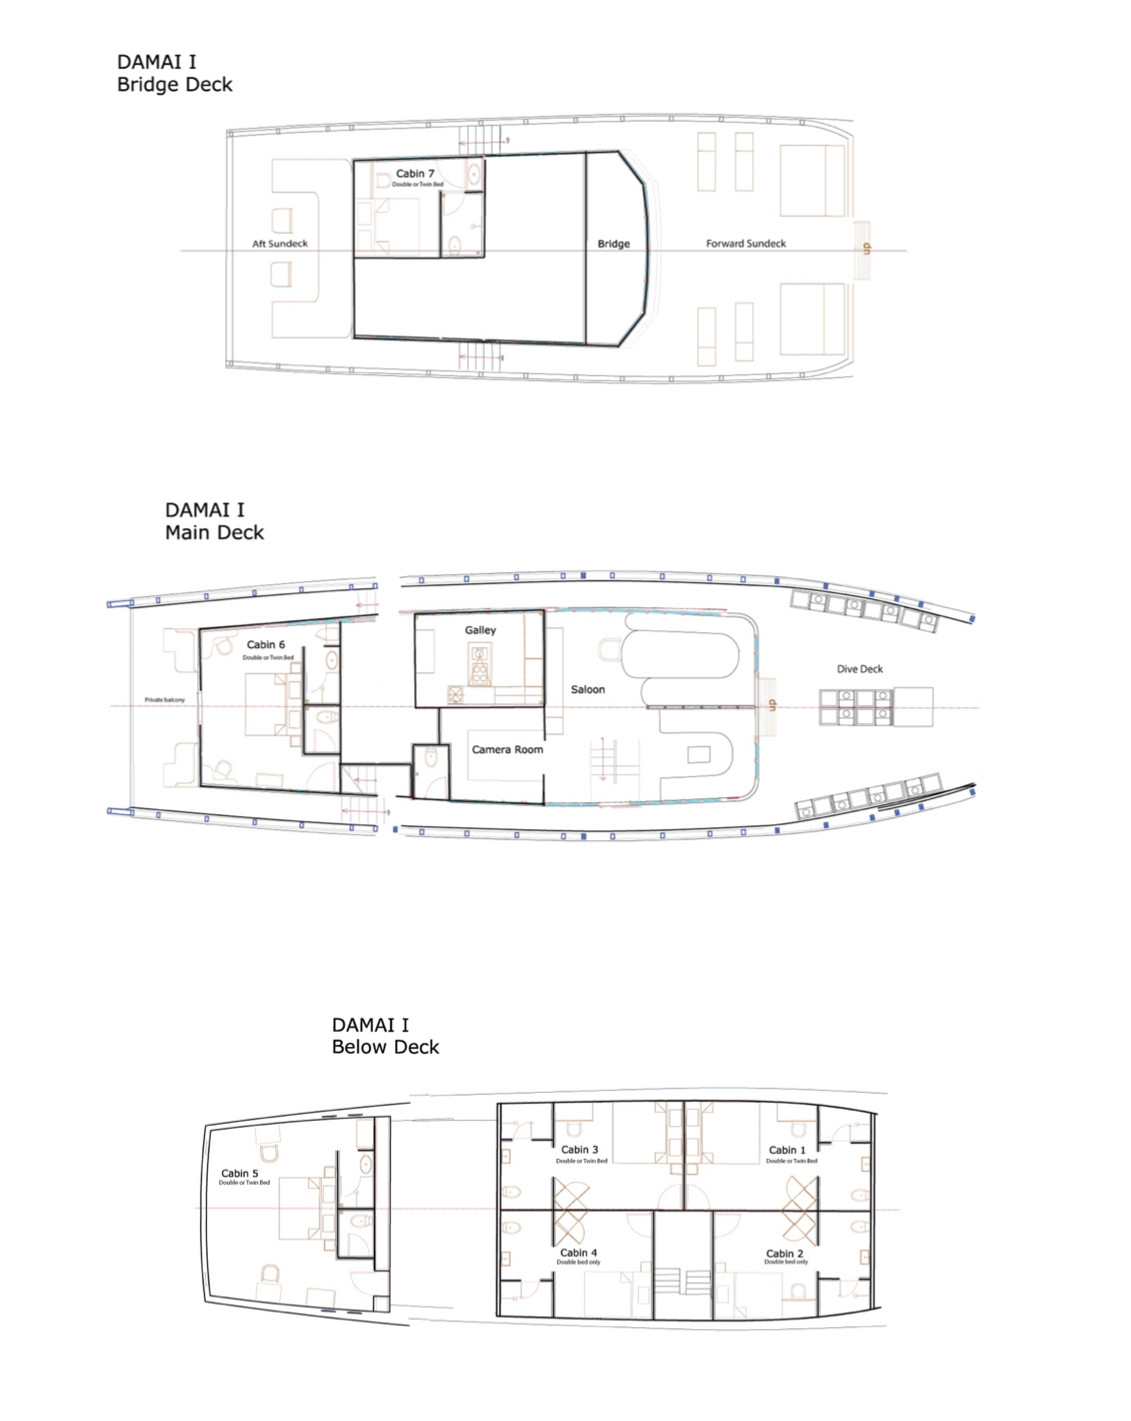 Damai I Dec Plan floorplan